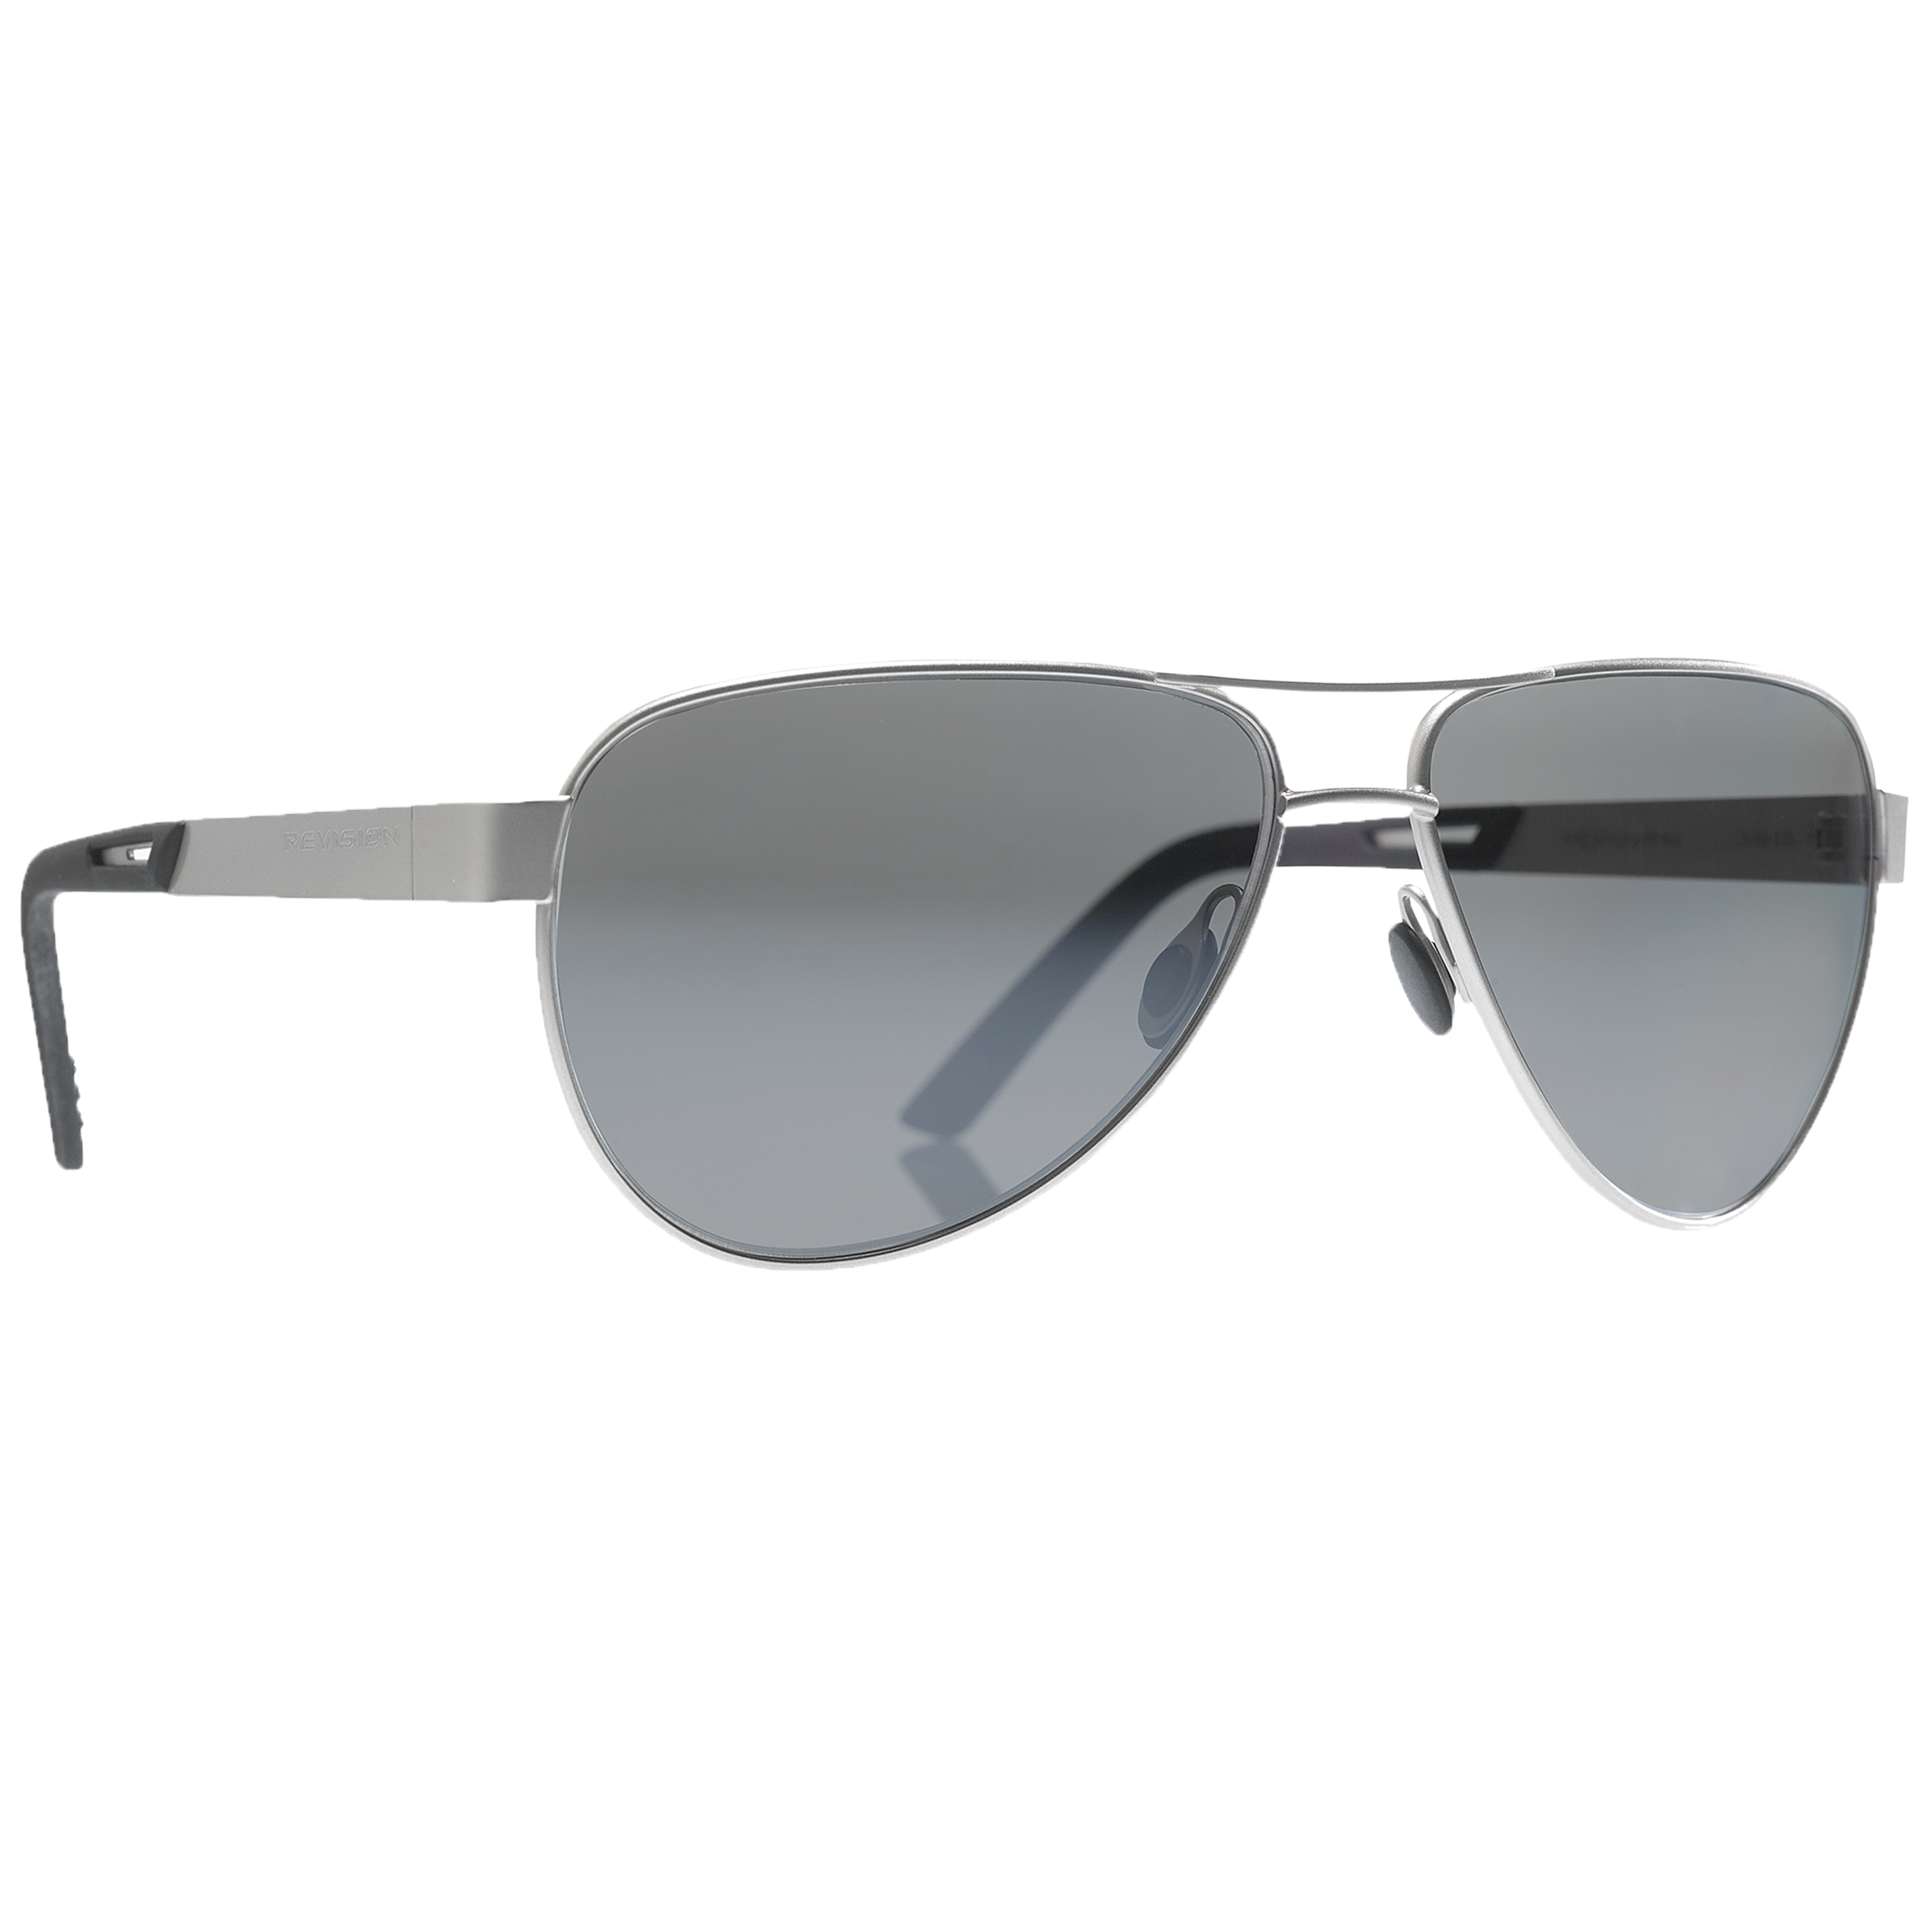 Revision Sunglasses Alphawing Sport silver mirror